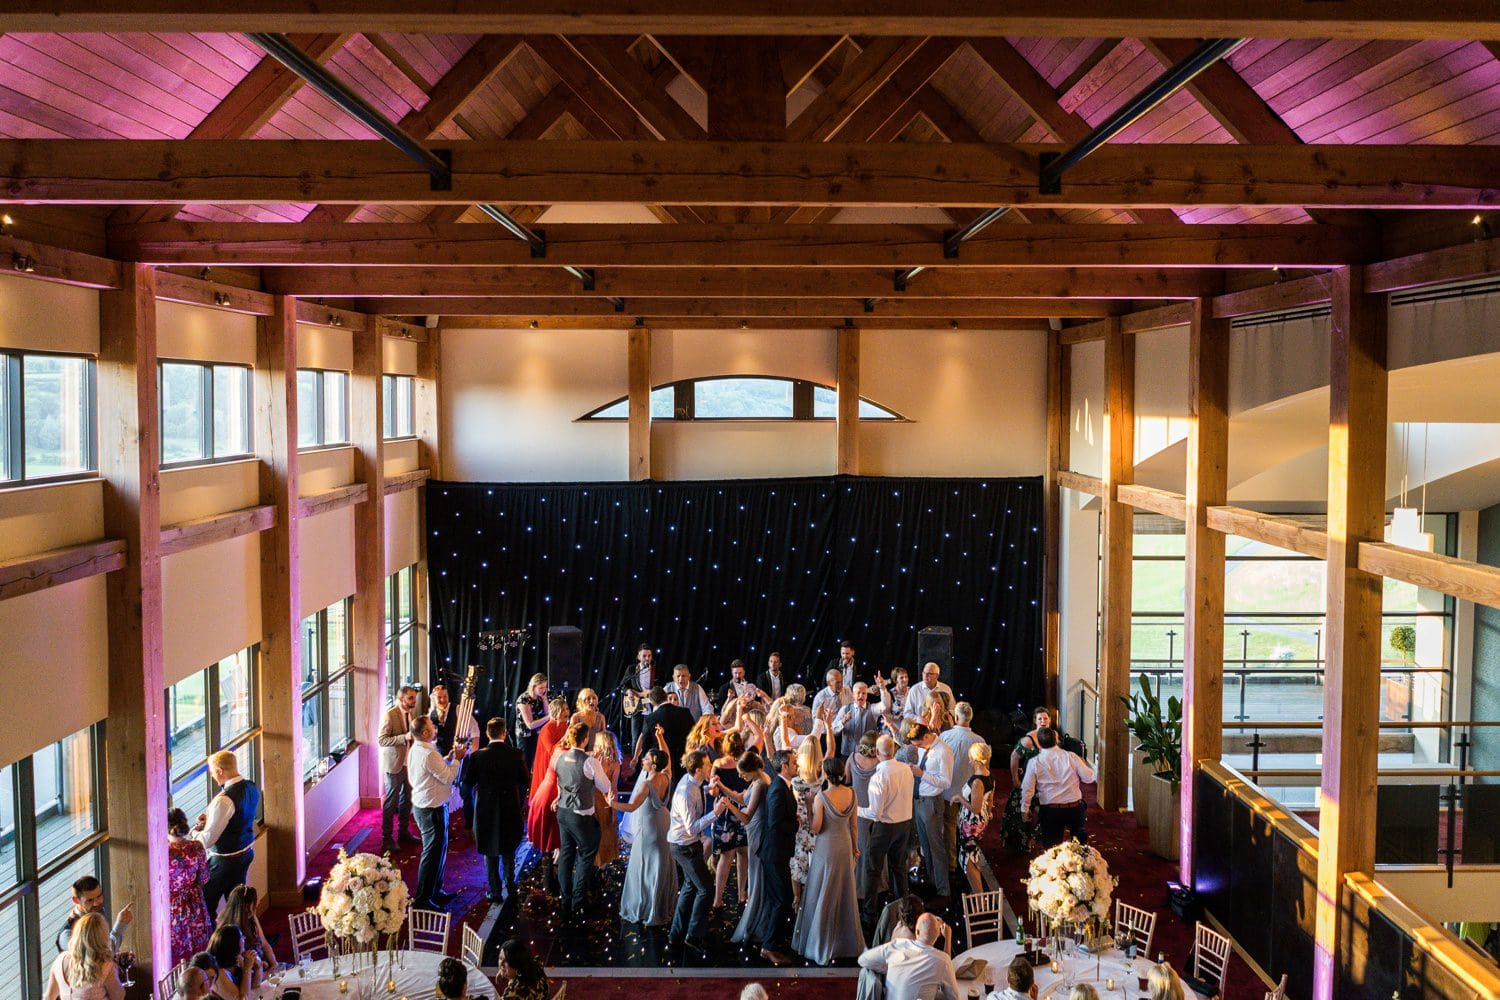 Dancing at the 2010 Clubhouse, Celtic Manor